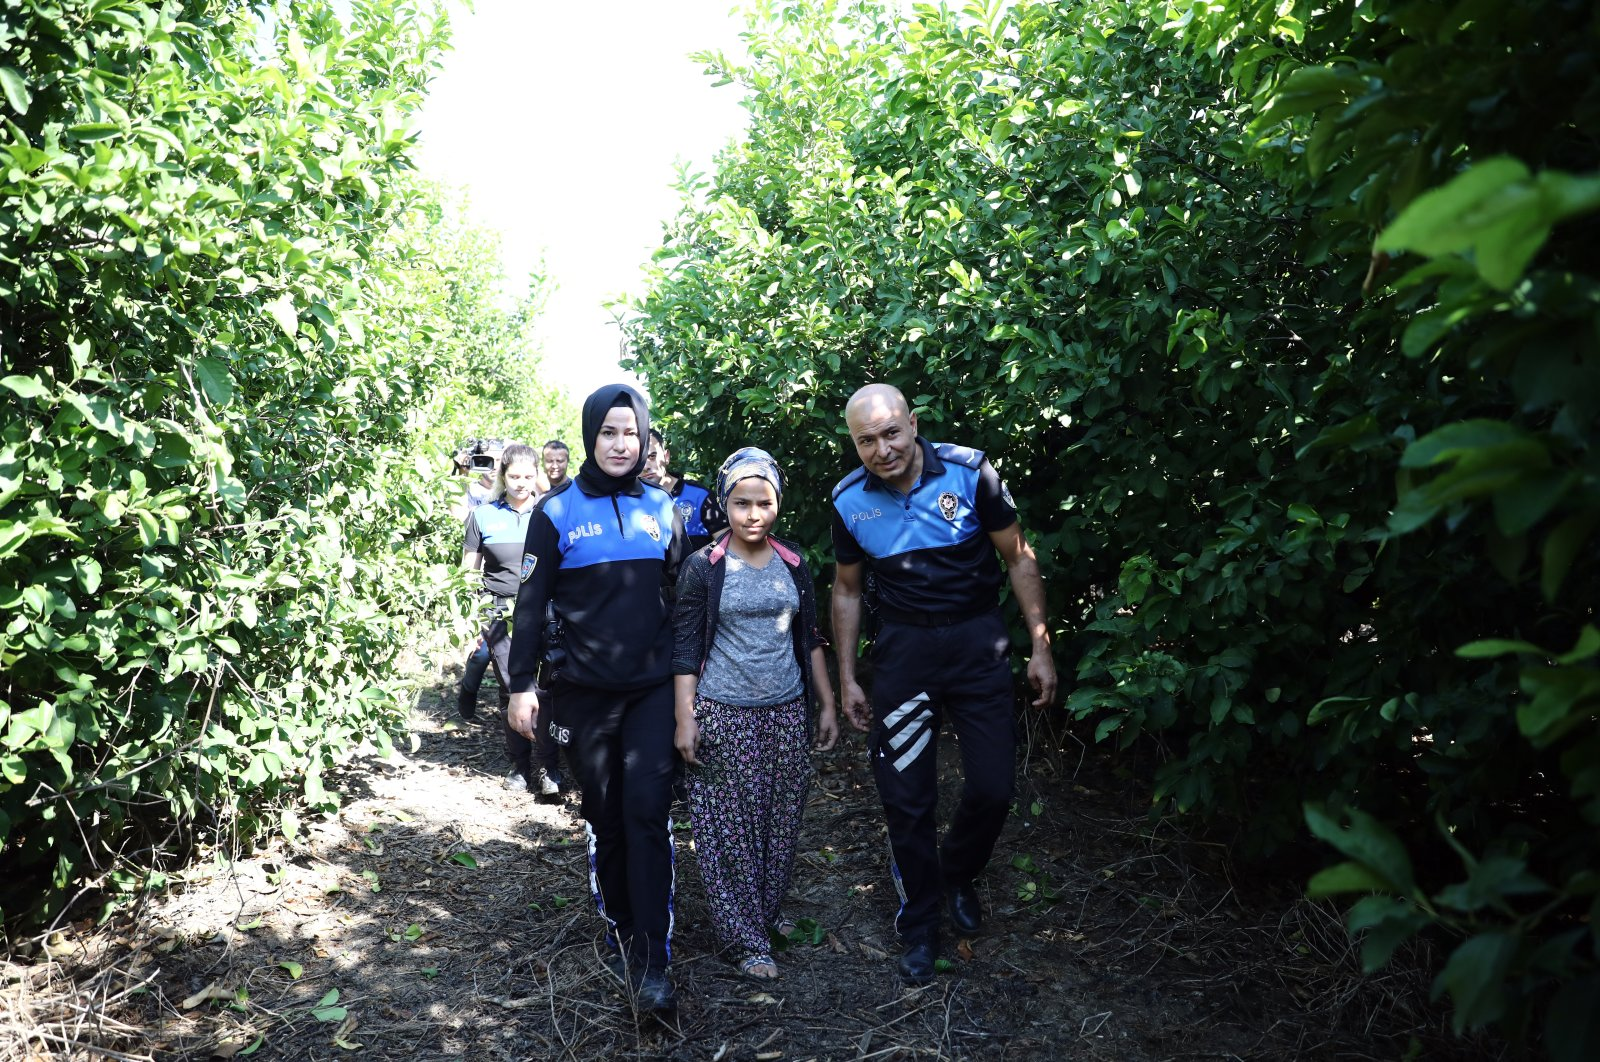 Police officers escort Fatma Poyraz – a child laborer working in an orchard with her family – to school in Adana, Turkey, October 8, 2019. (PHOTO BY ZİYA RAMOĞLU)